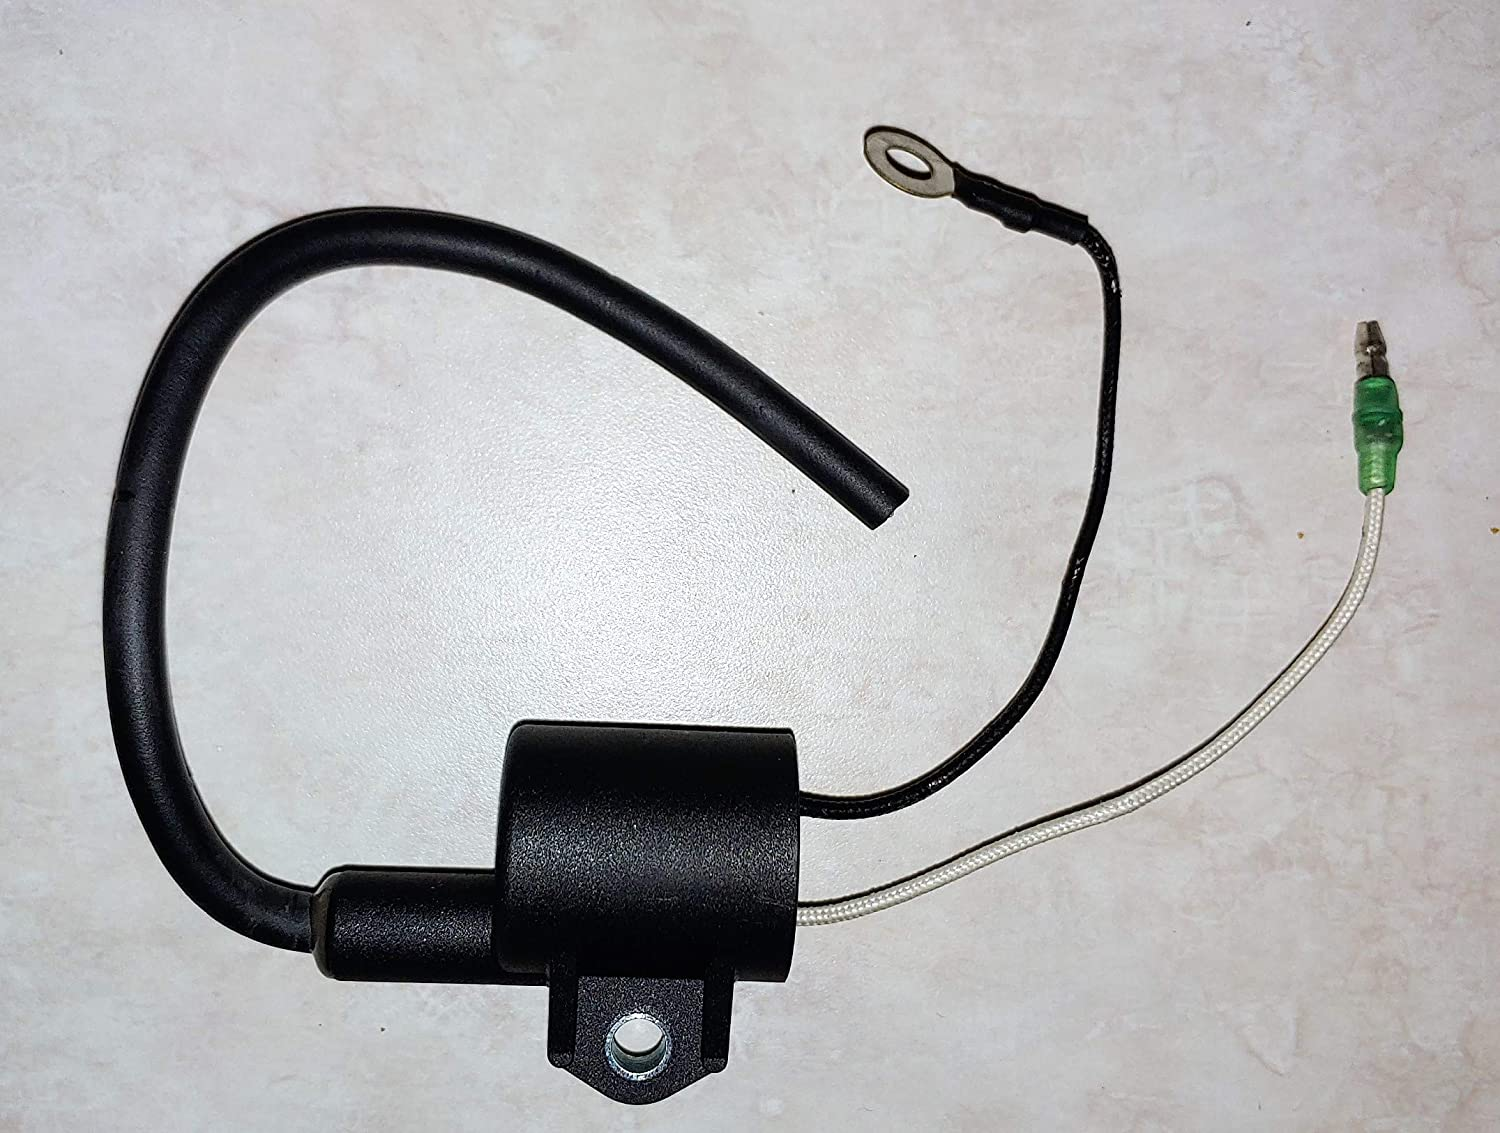 Engines Replaces 61N-85570-10-00 and 61N-85570-00-00 2 stroke 25 HP Ignition Coil Assy for Yamaha Outboard C 20 HP 30 HP